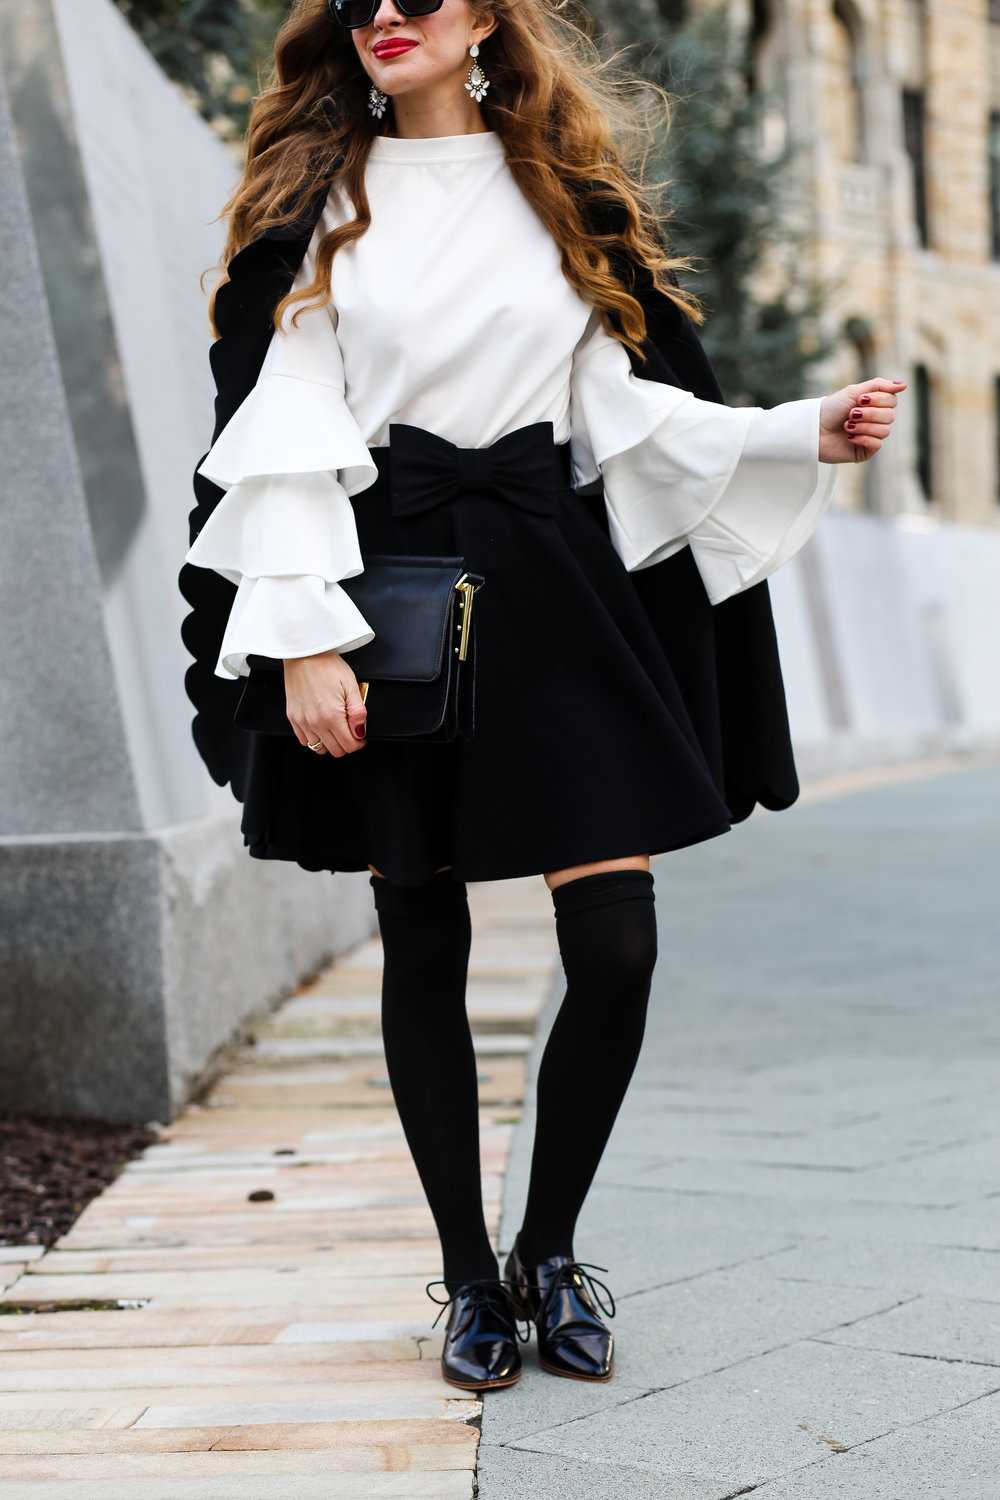 Bell Sleeves & Cape- Enchanting Elegance